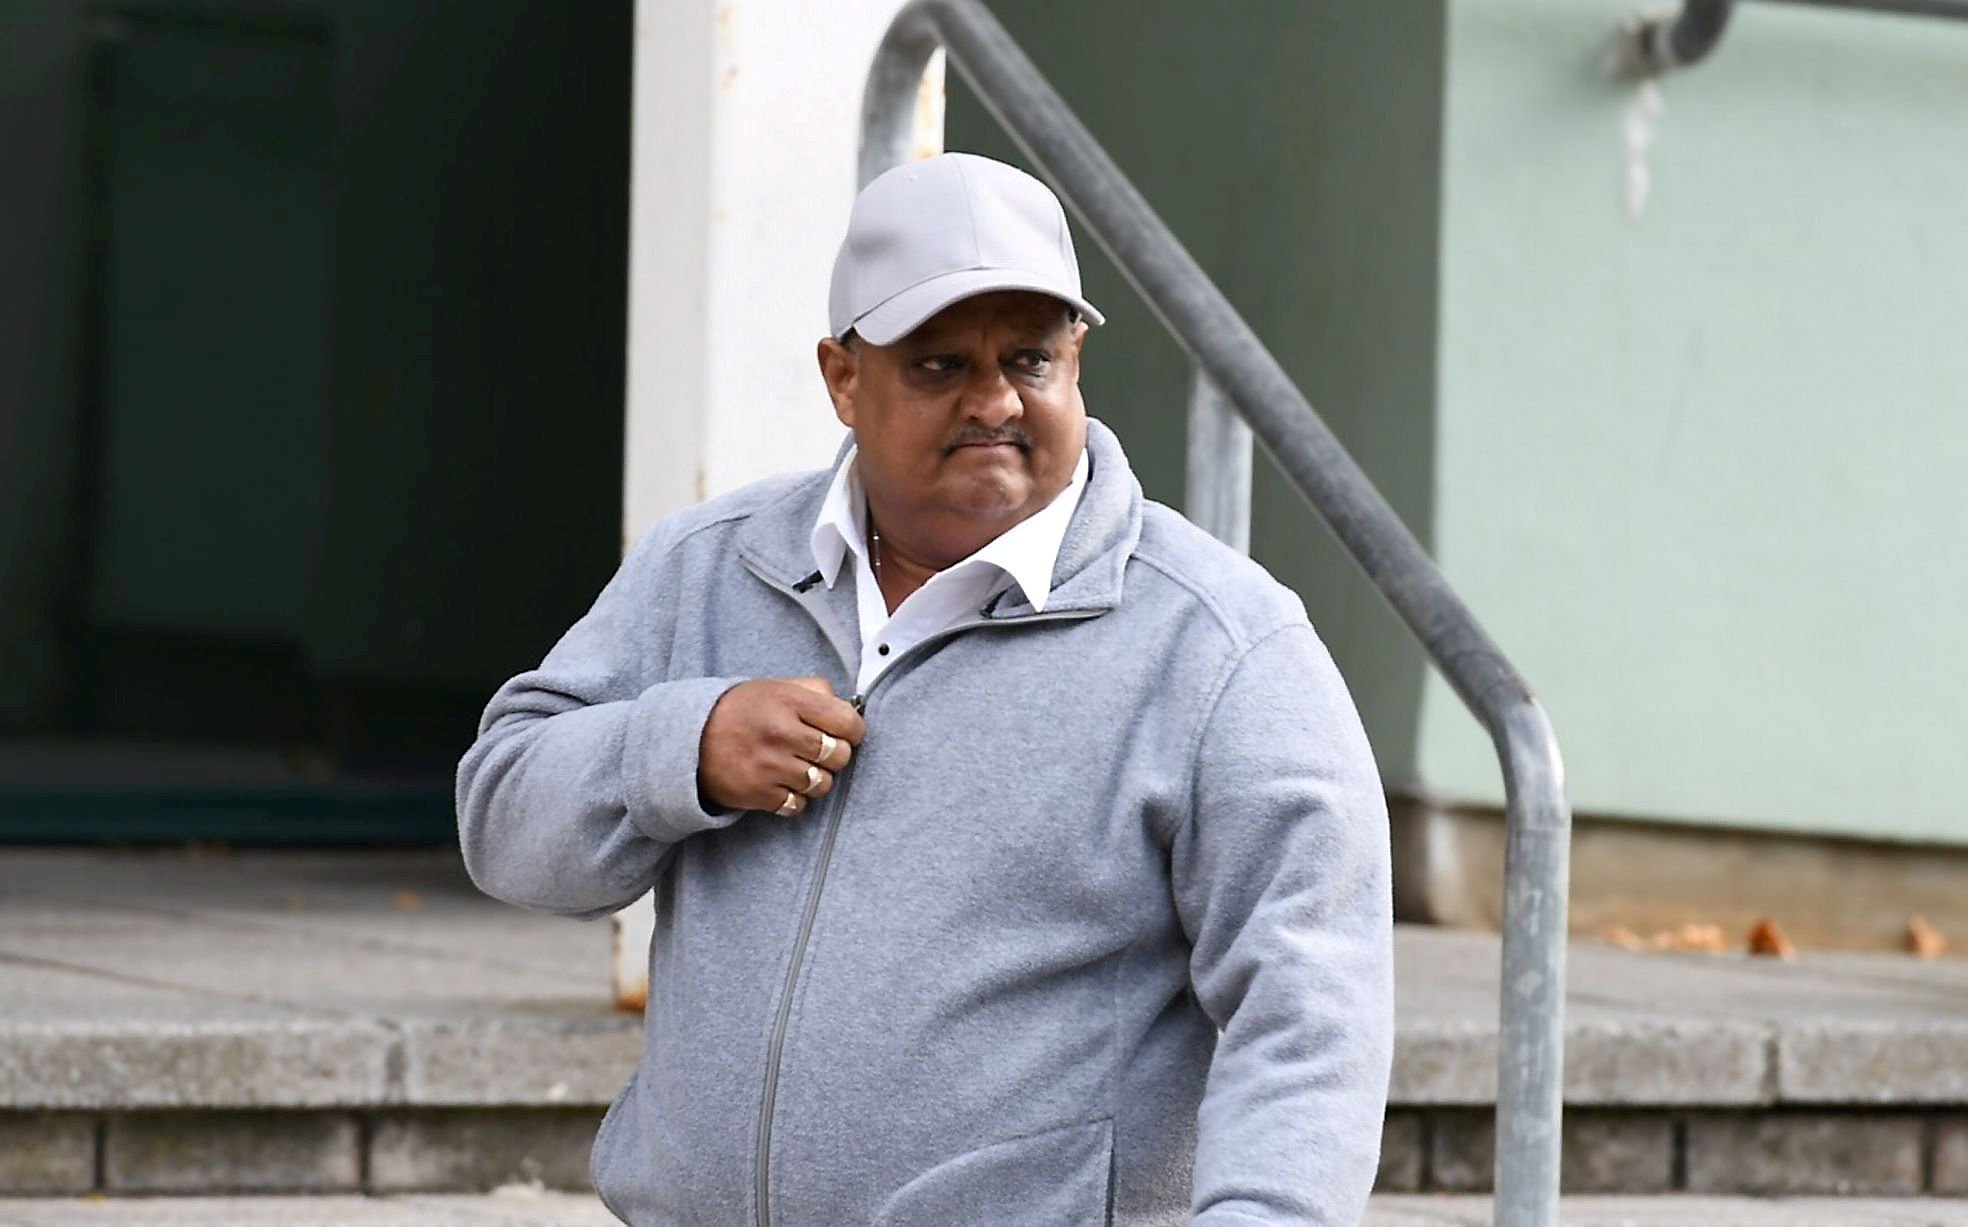 Himwanth Ramkishun pictured leaving court. See SWNS story SWPLrape; A laundryman accused of raping an elderly woman at a city care home left behind a condom, a jury was told. A court heard that the contraceptive was later recovered by Himwanth Ramkishun?s wife, herself a senior staff member there. Duty manager Ivorine Ramkishun called the police - unaware that the condom contained traces of her husband?s DNA, the jury was told. Himwanth Ramkishun, aged 54, has gone on trial at Plymouth Crown Court accused of raping the 76-year-old dementia sufferer.